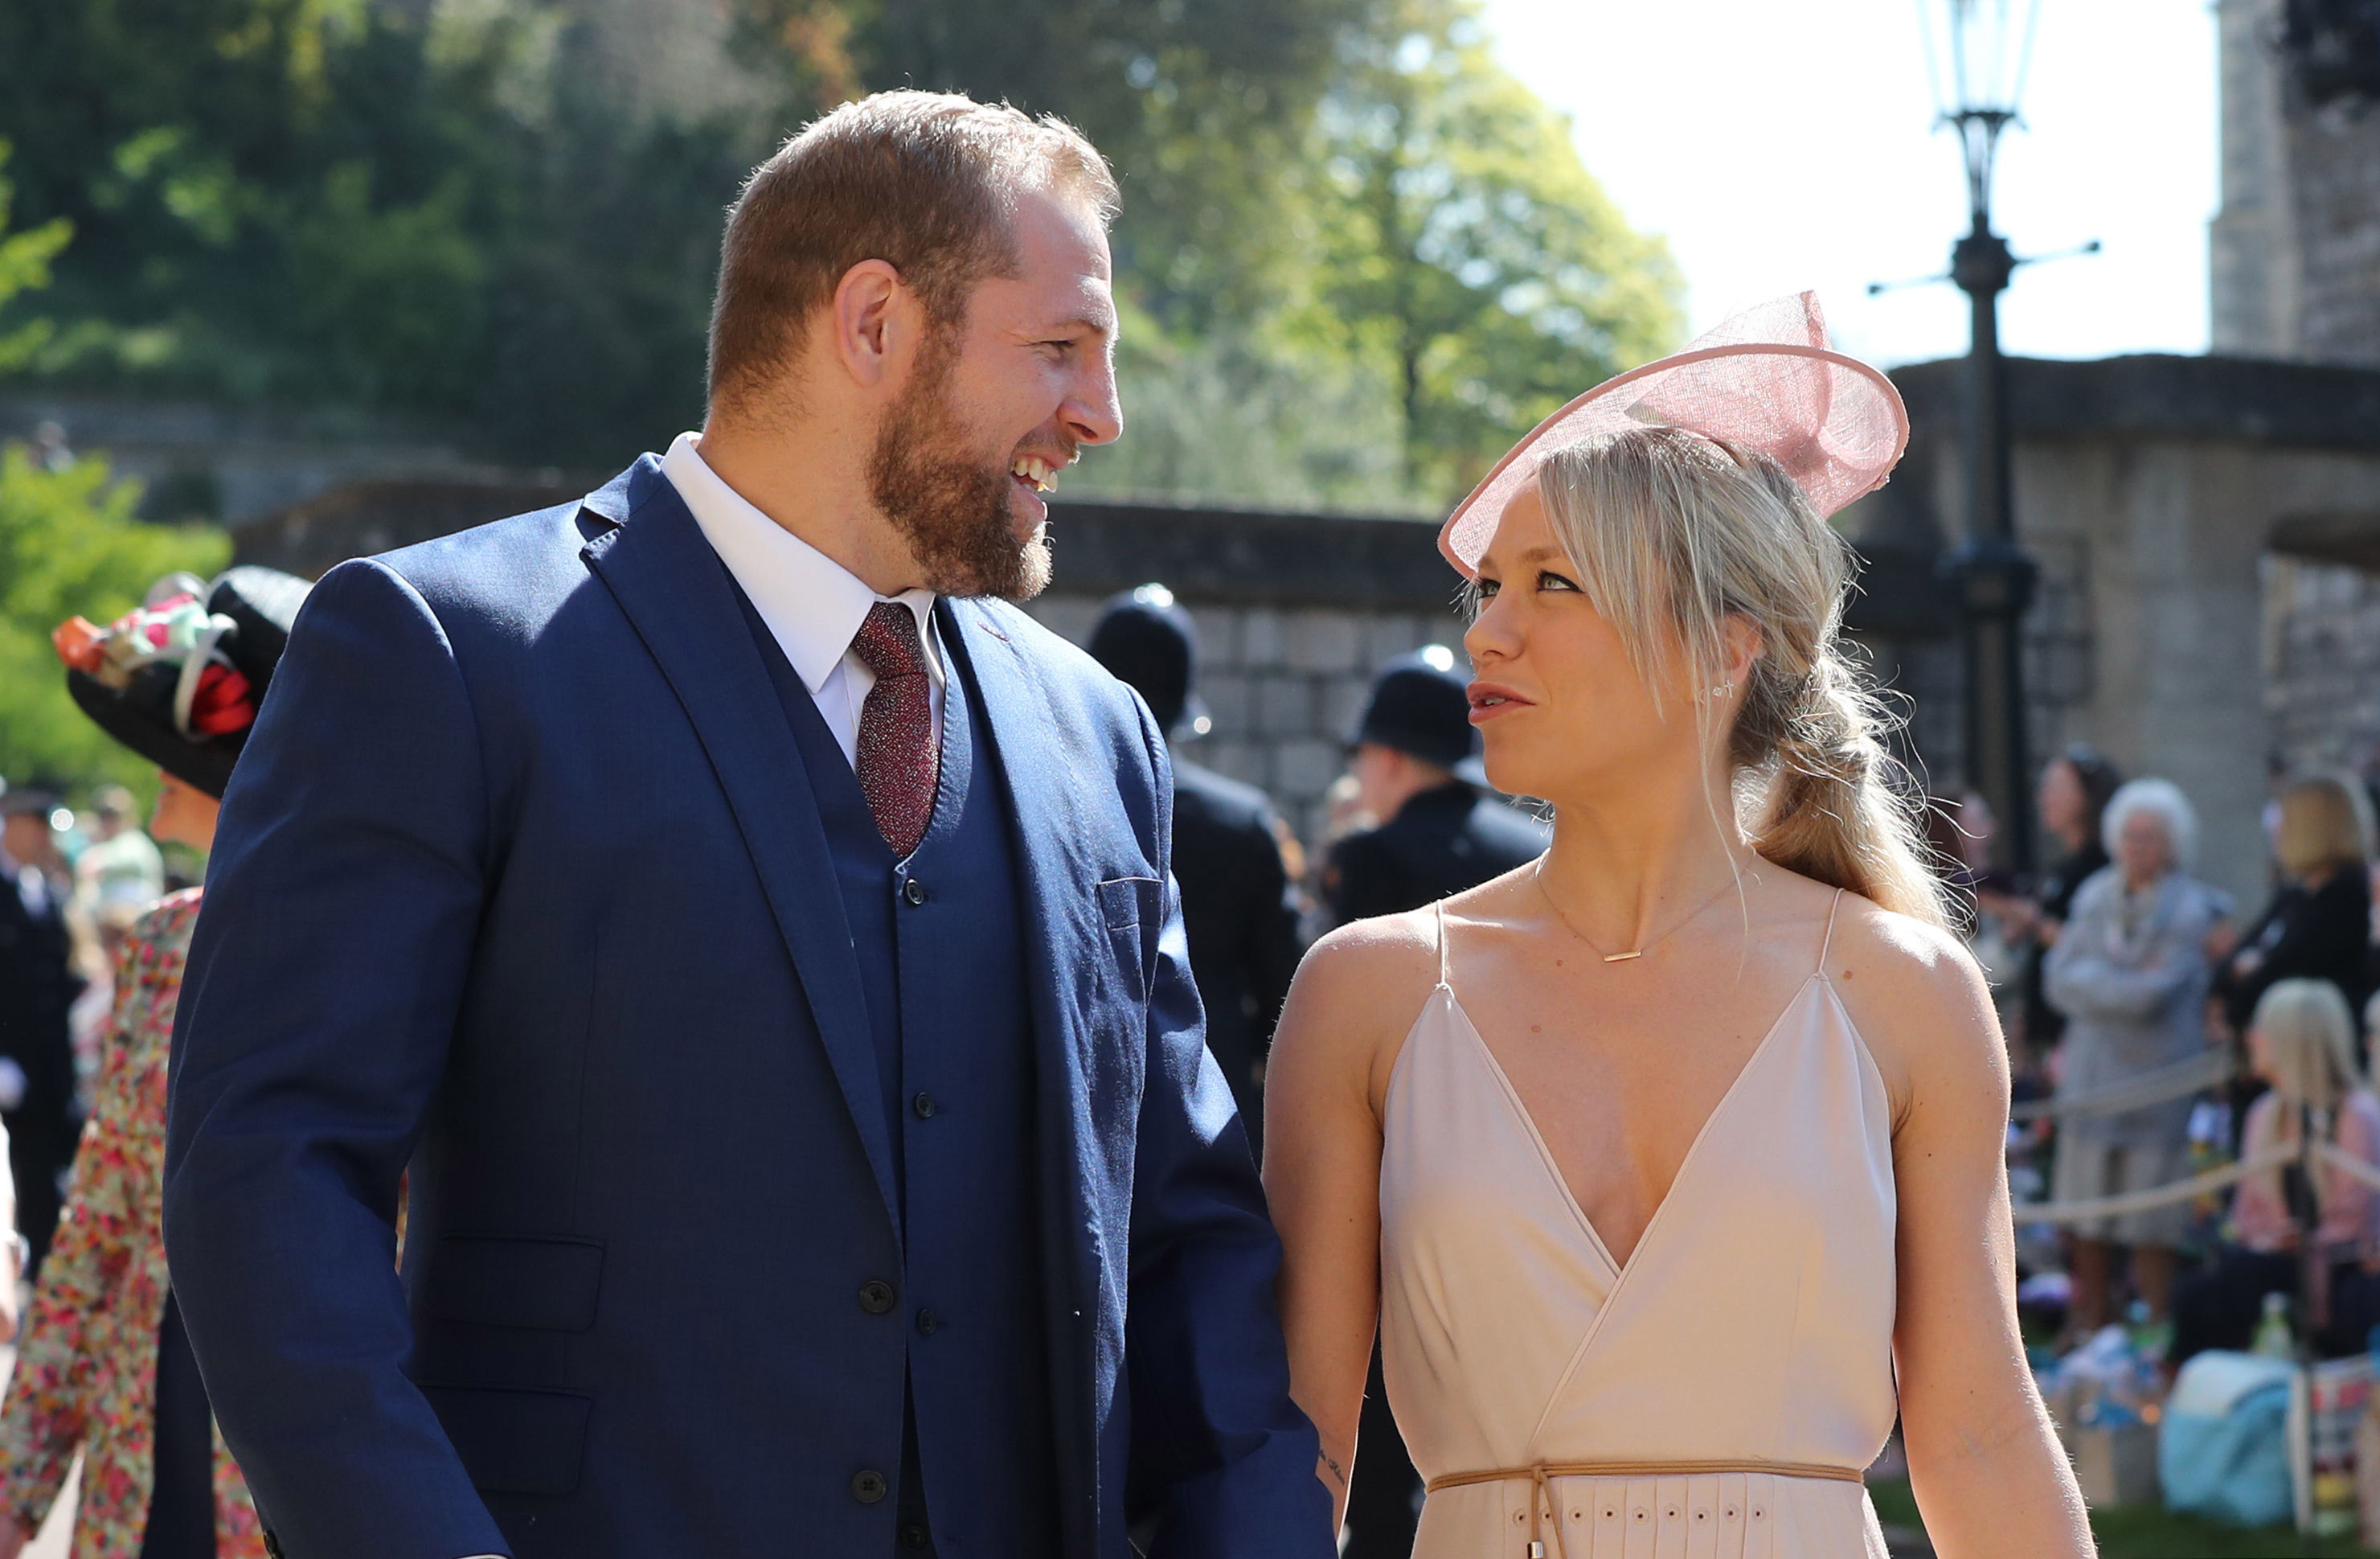 WINDSOR, UNITED KINGDOM - MAY 19:  James Haskell and Chloe Madeley arrive at St George's Chapel at Windsor Castle before the wedding of Prince Harry to Meghan Markle on May 19, 2018 in Windsor, England. (Photo by Gareth Fuller - WPA Pool/Getty Images)